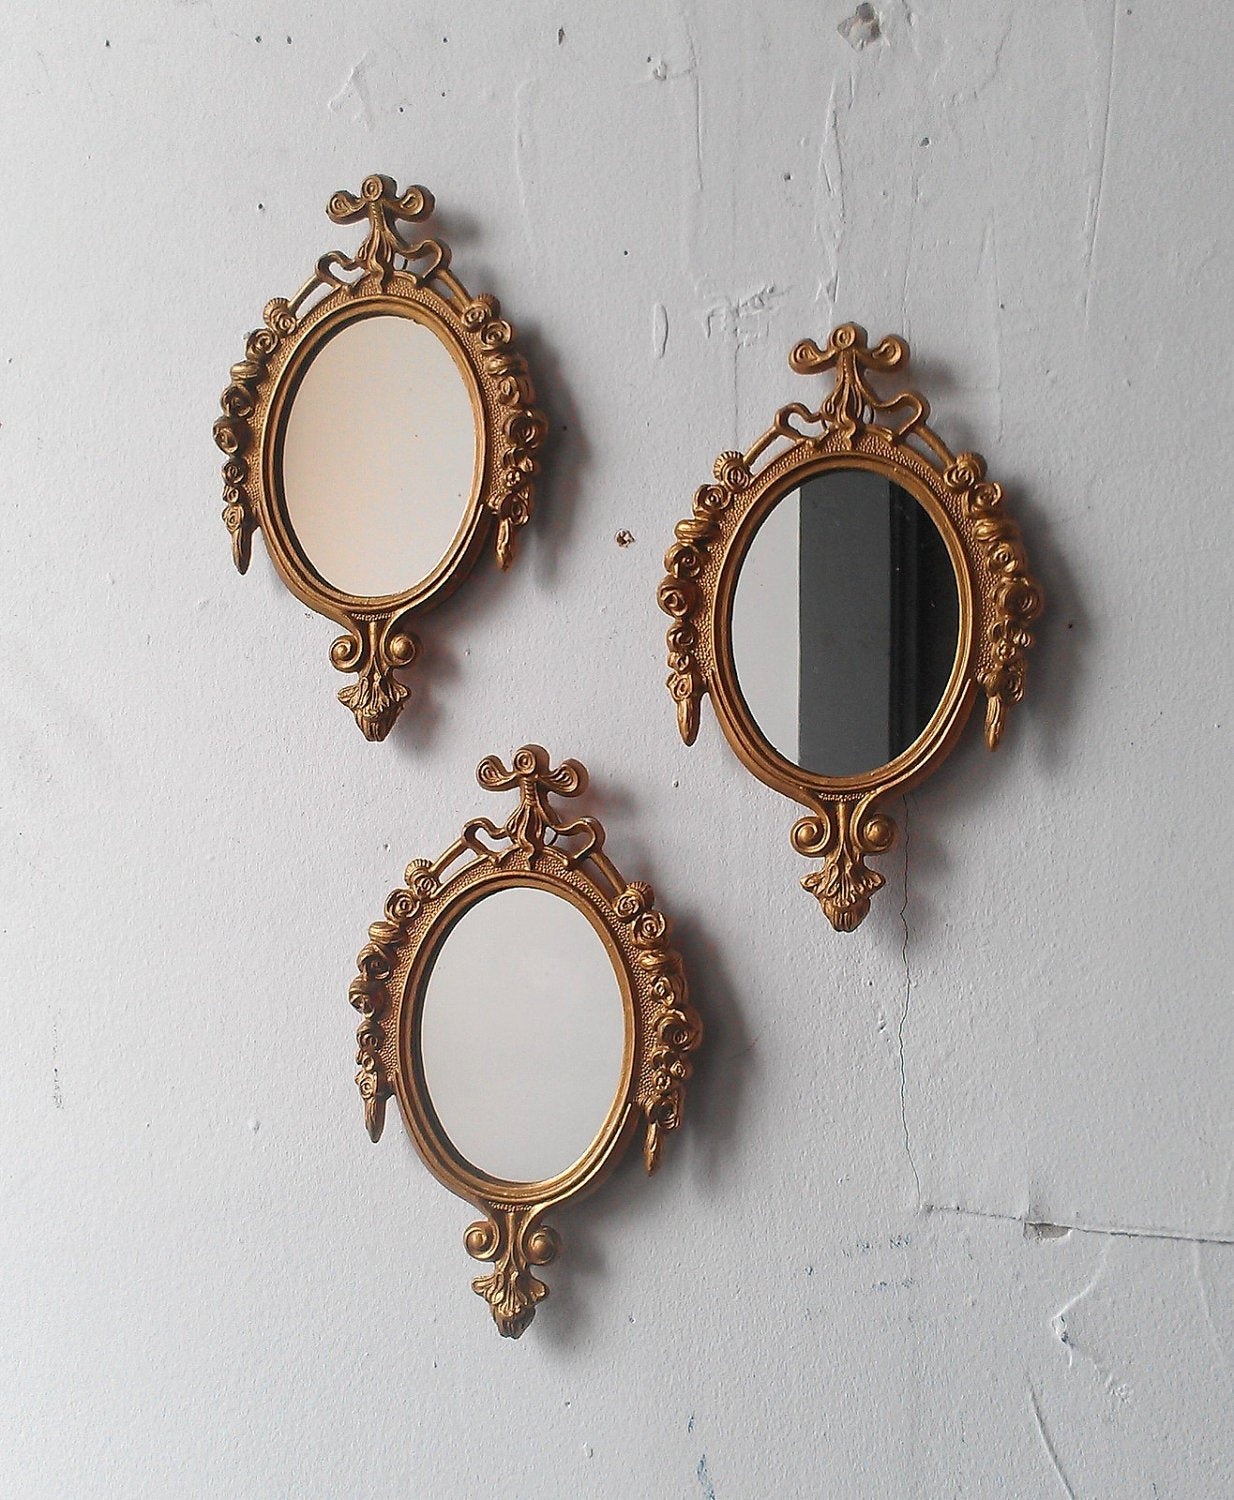 Small Mirrors for Wall Decor Fresh Gold Framed Mirror Set Of Three In Small ornate Vintage Frames